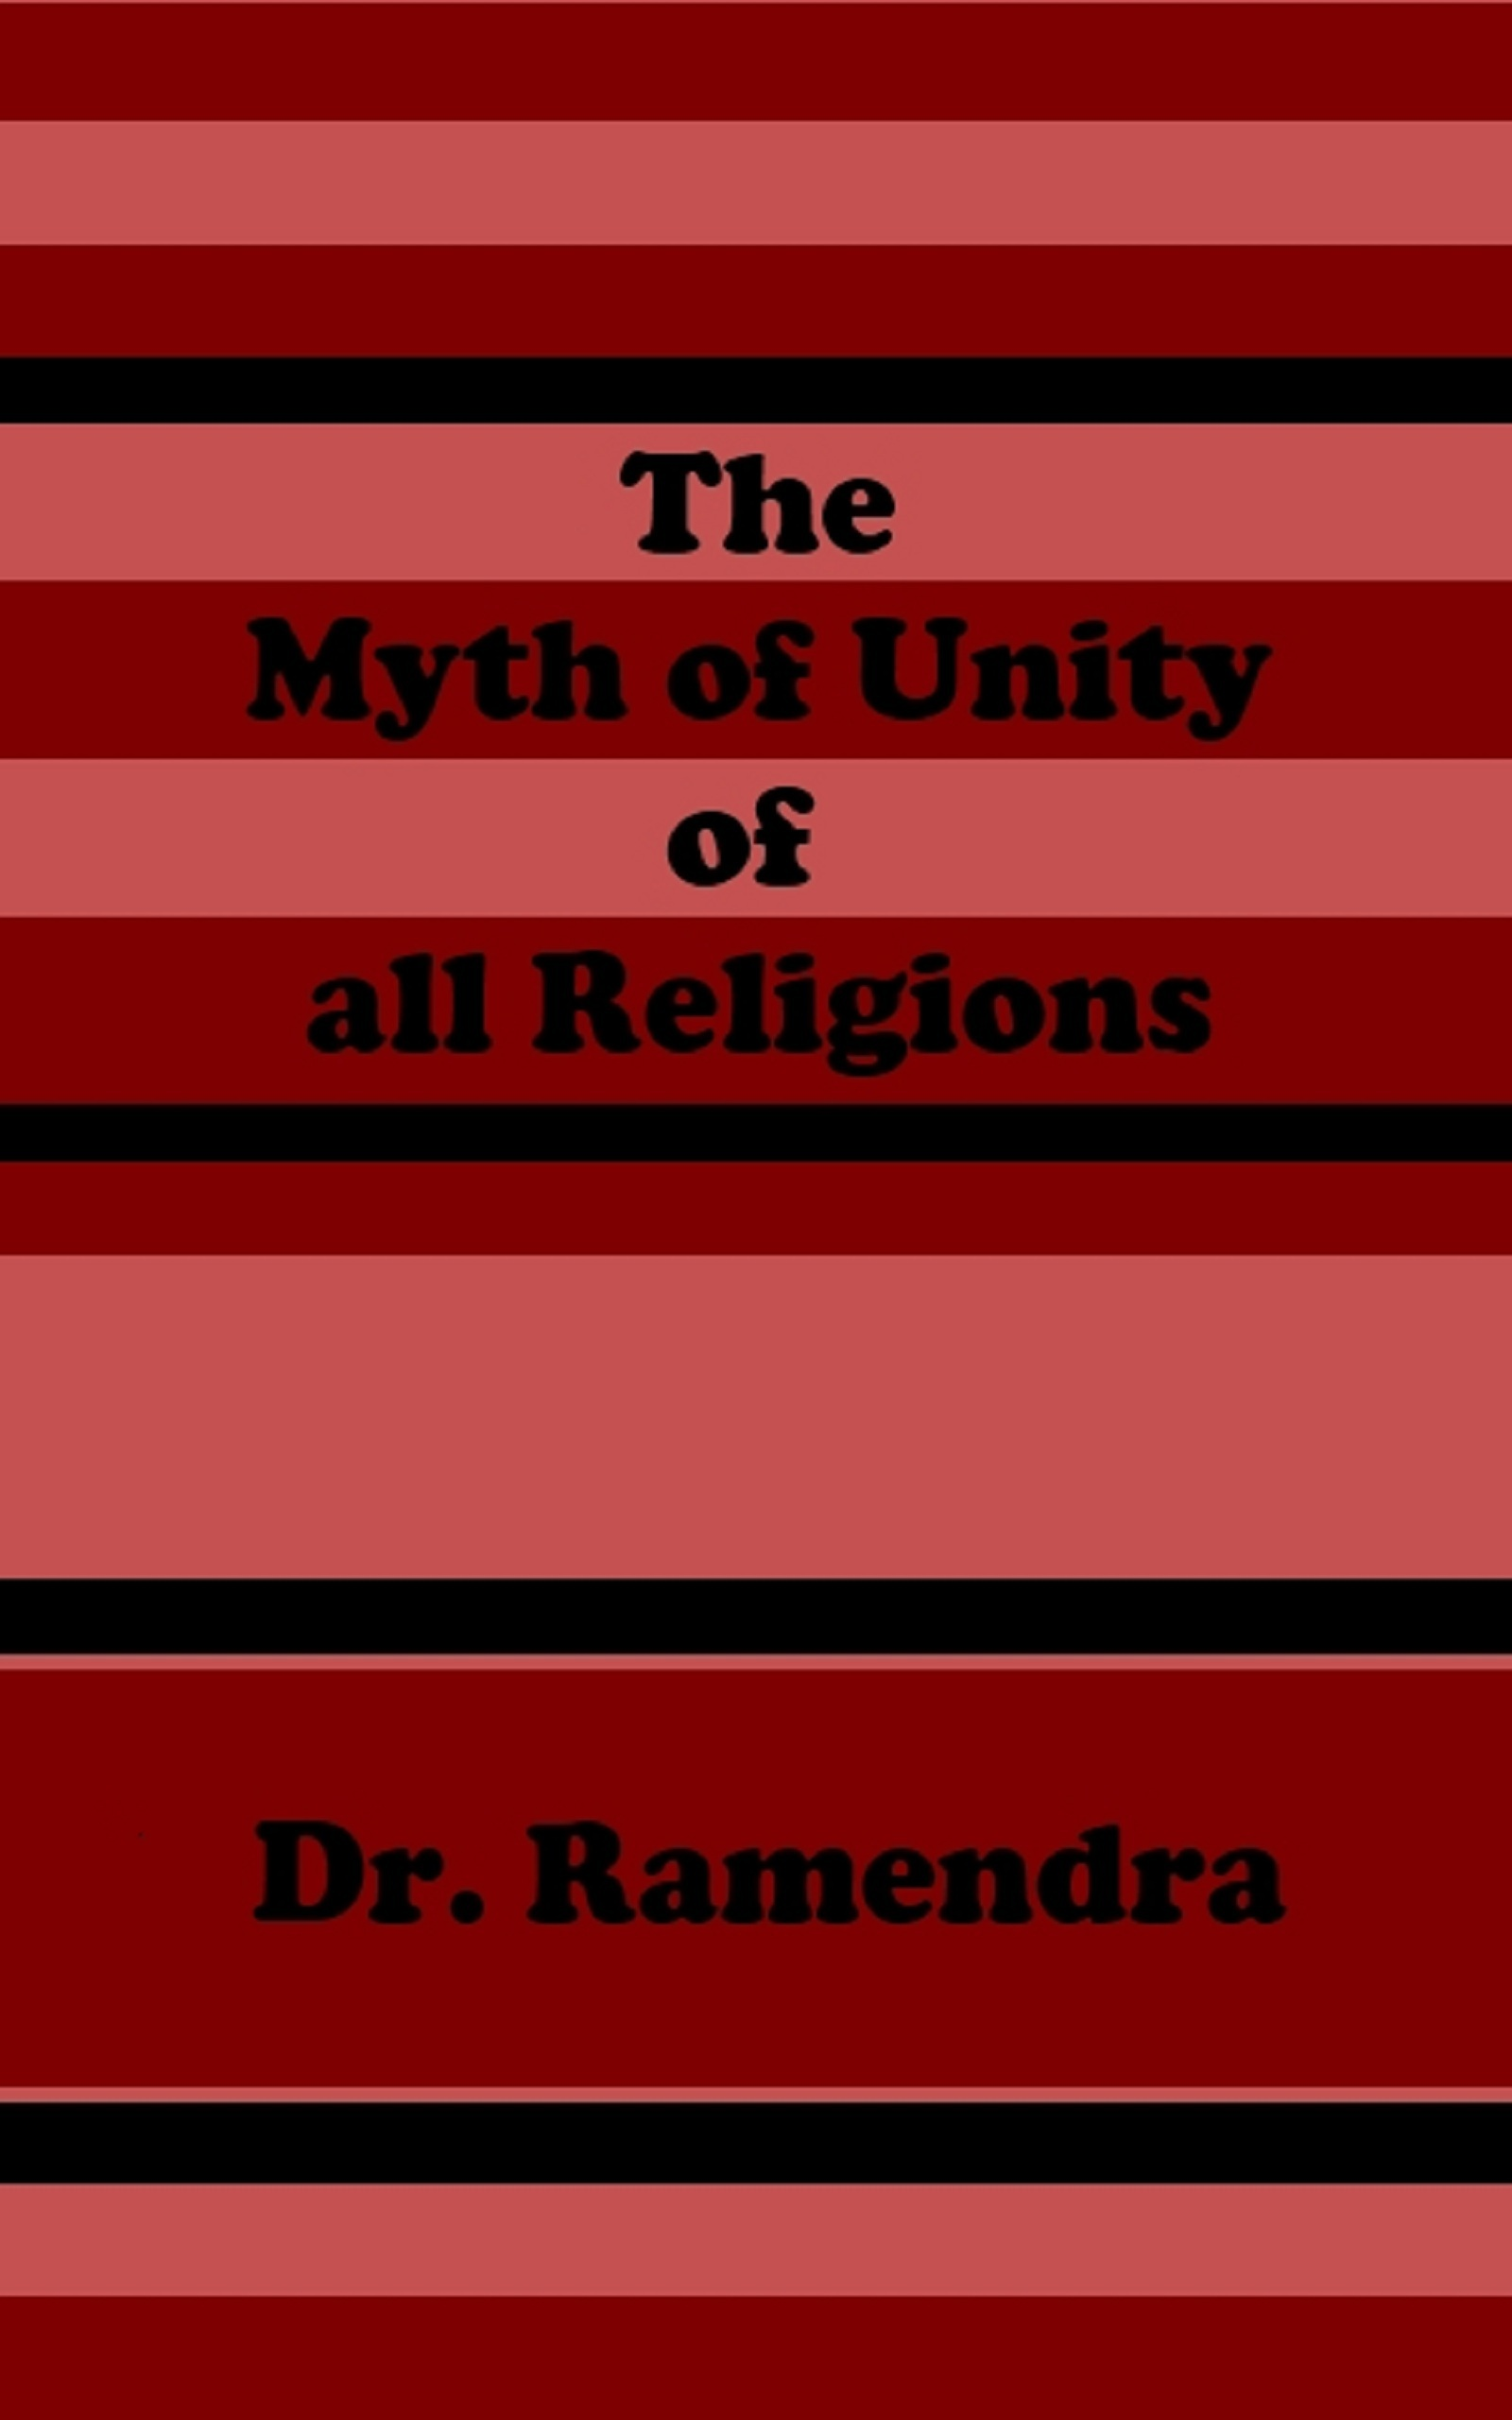 The Myth of Unity of all Religions